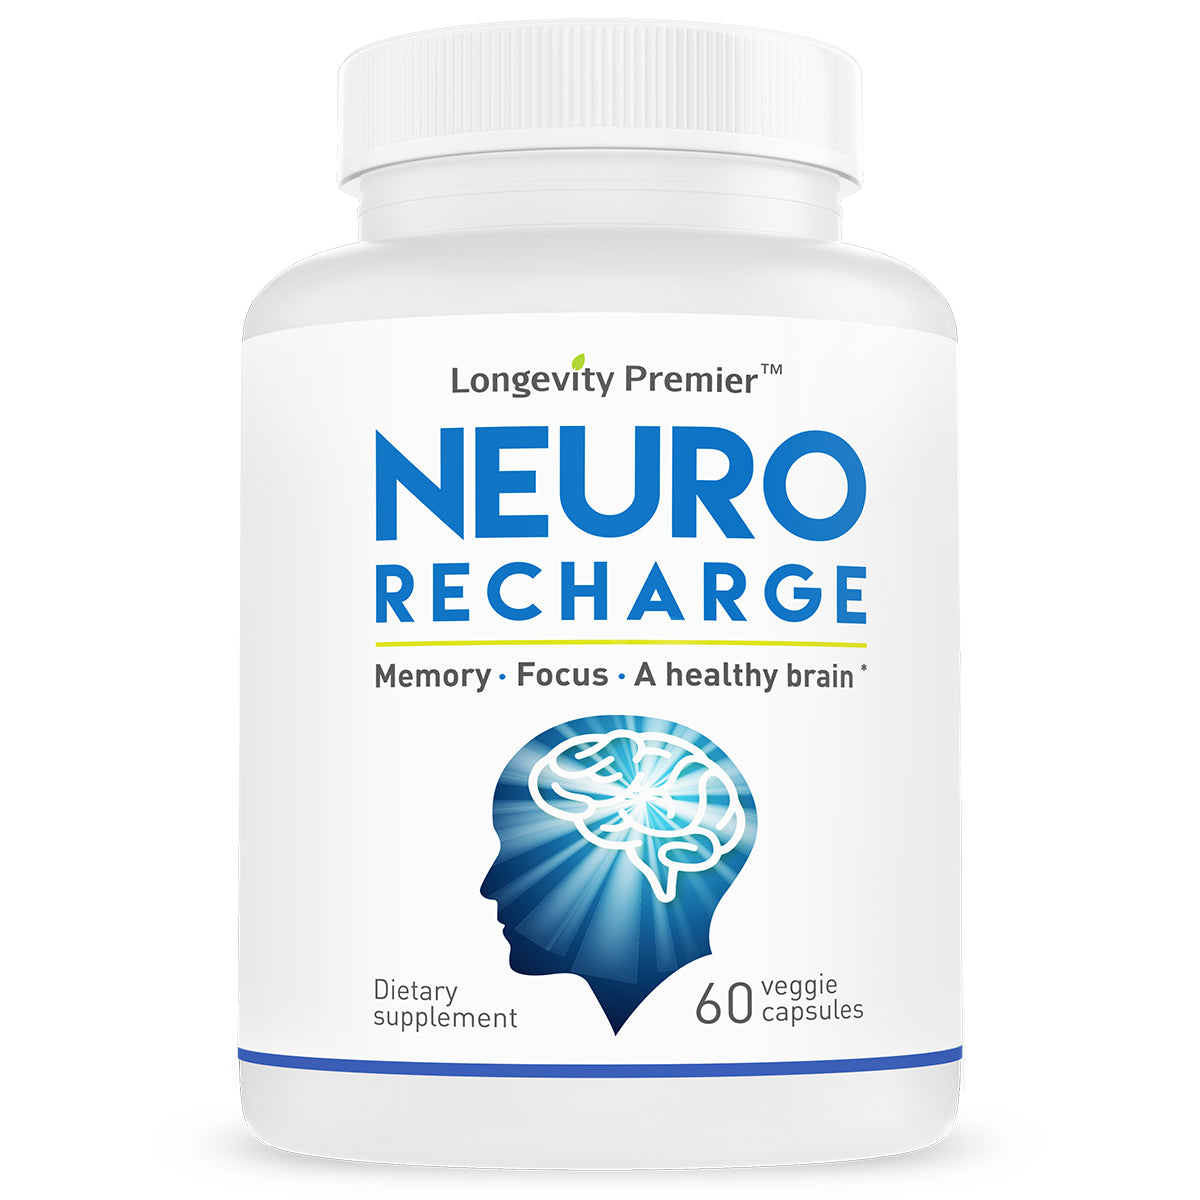 Neuro Recharge - Enhances cognitive & neural functions with